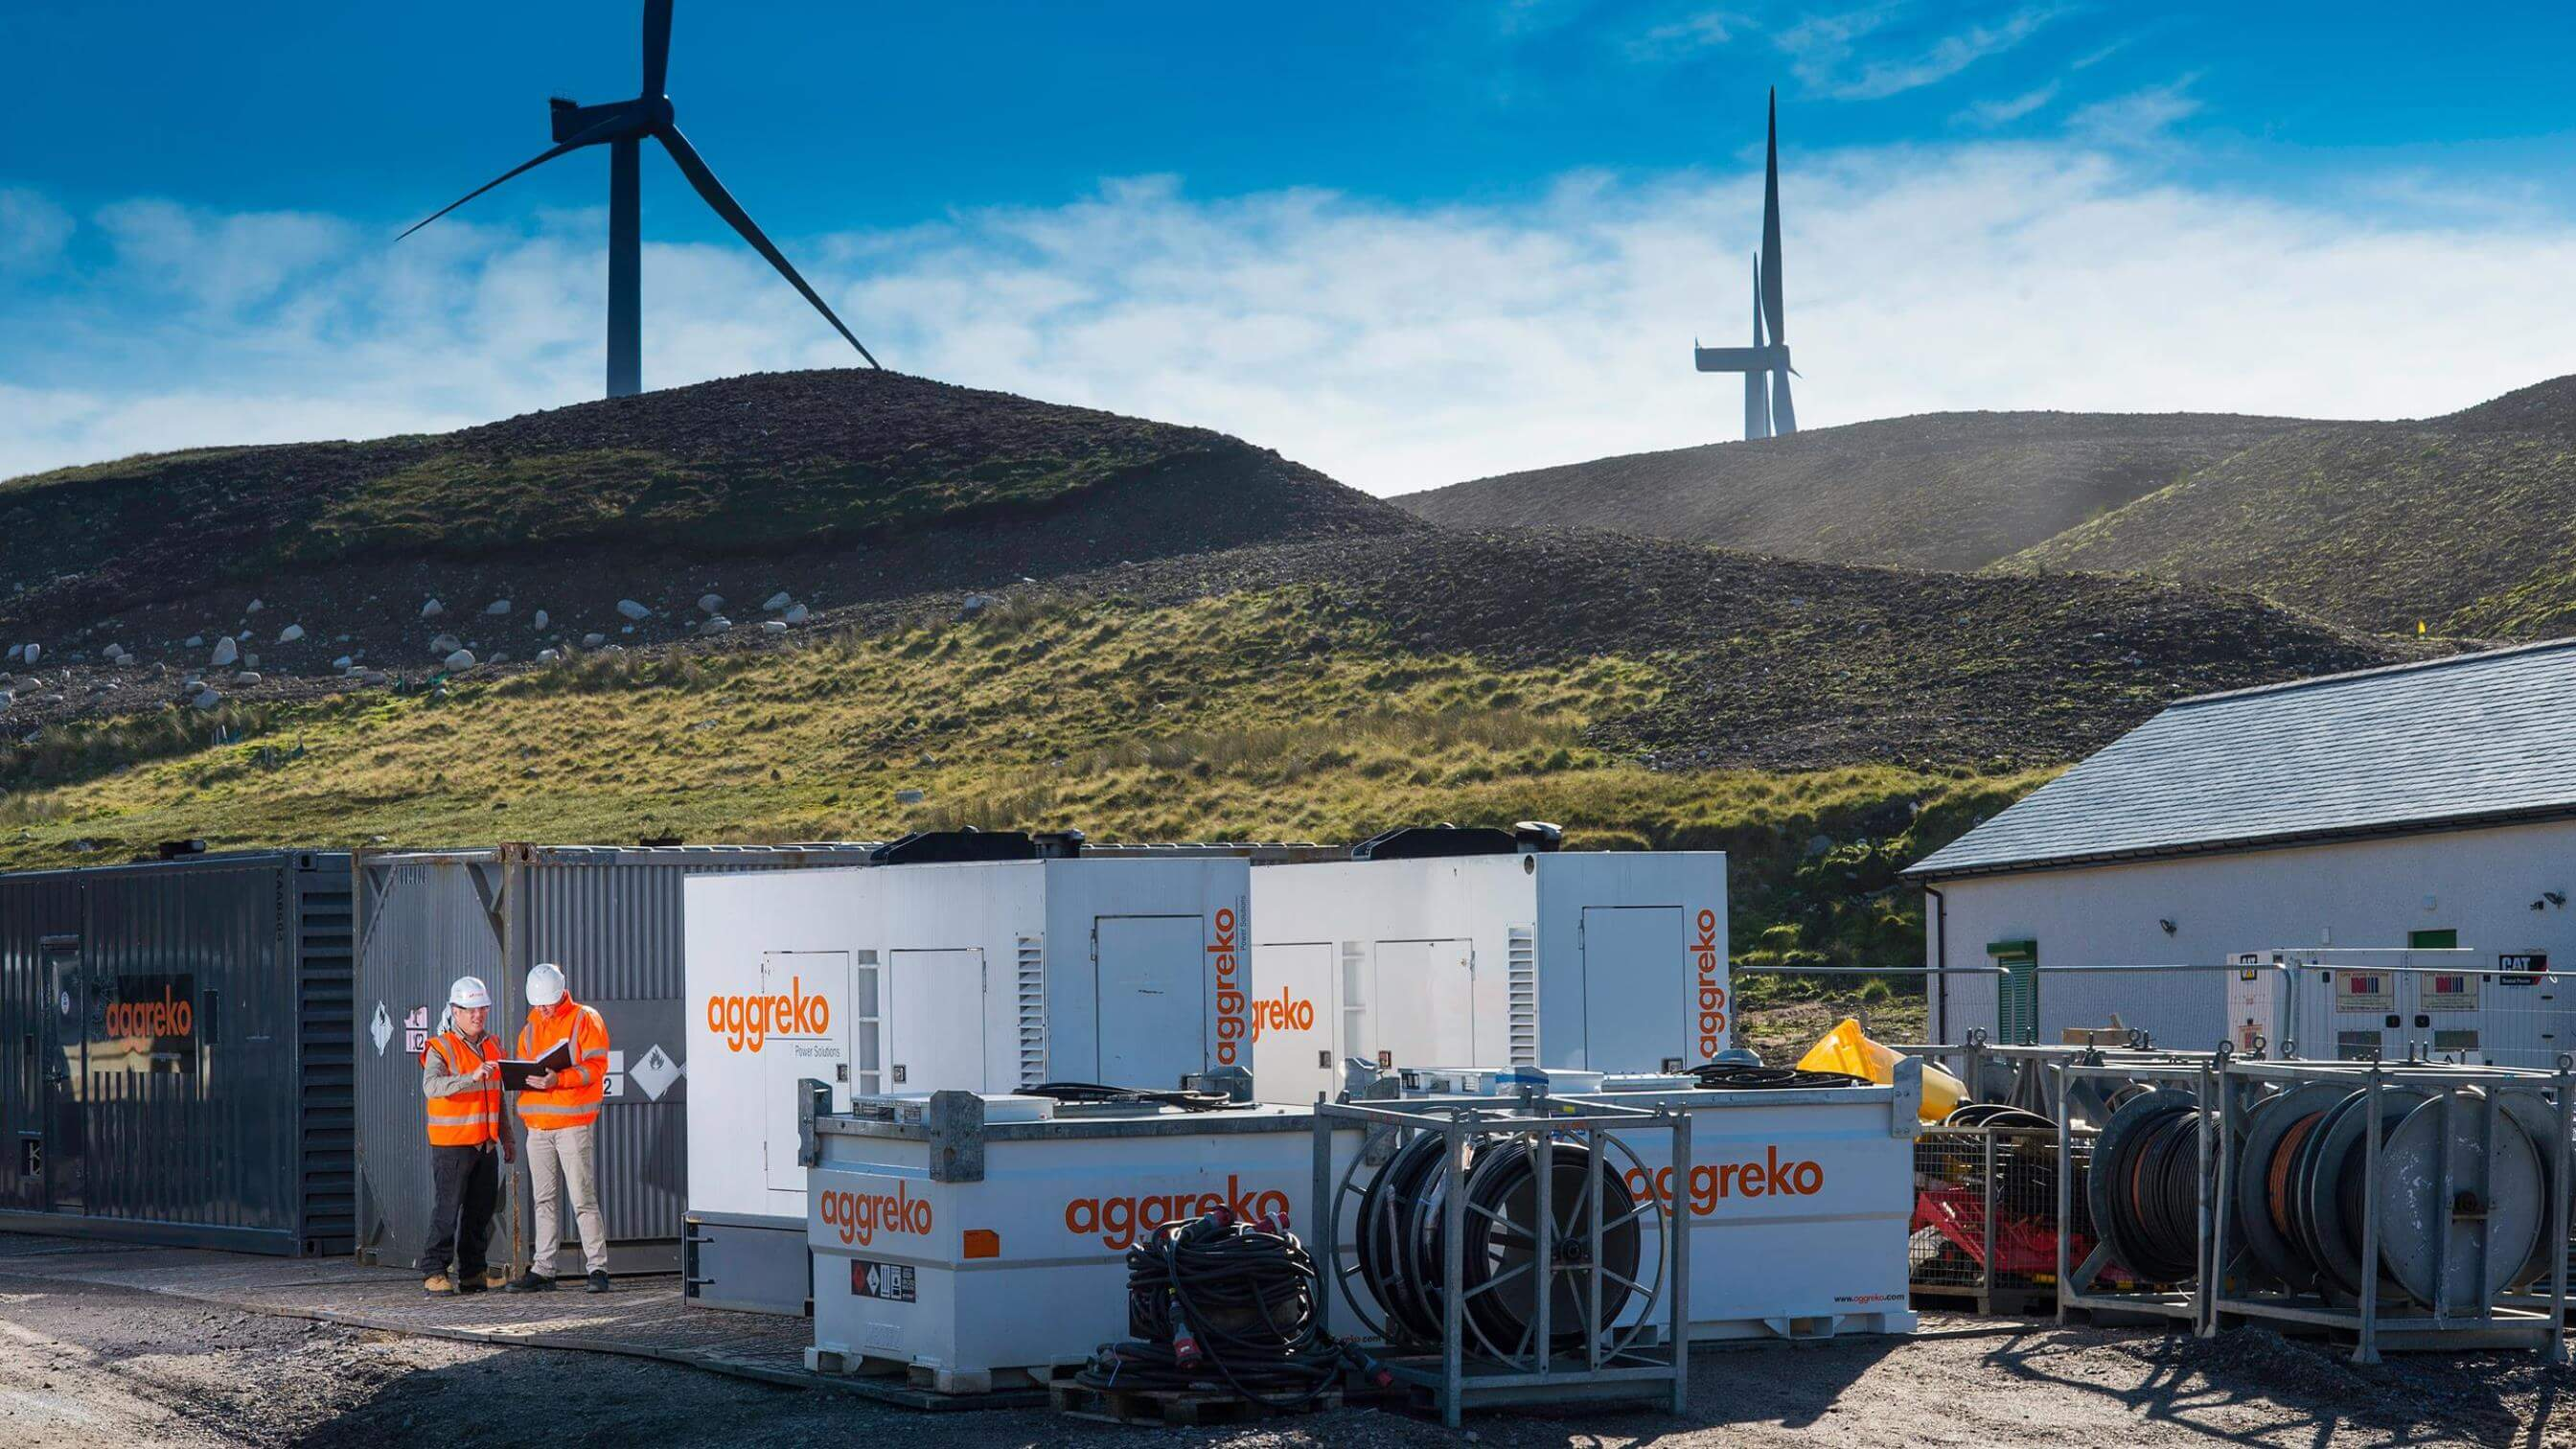 Aggreko equipment at a Scotland windfarm